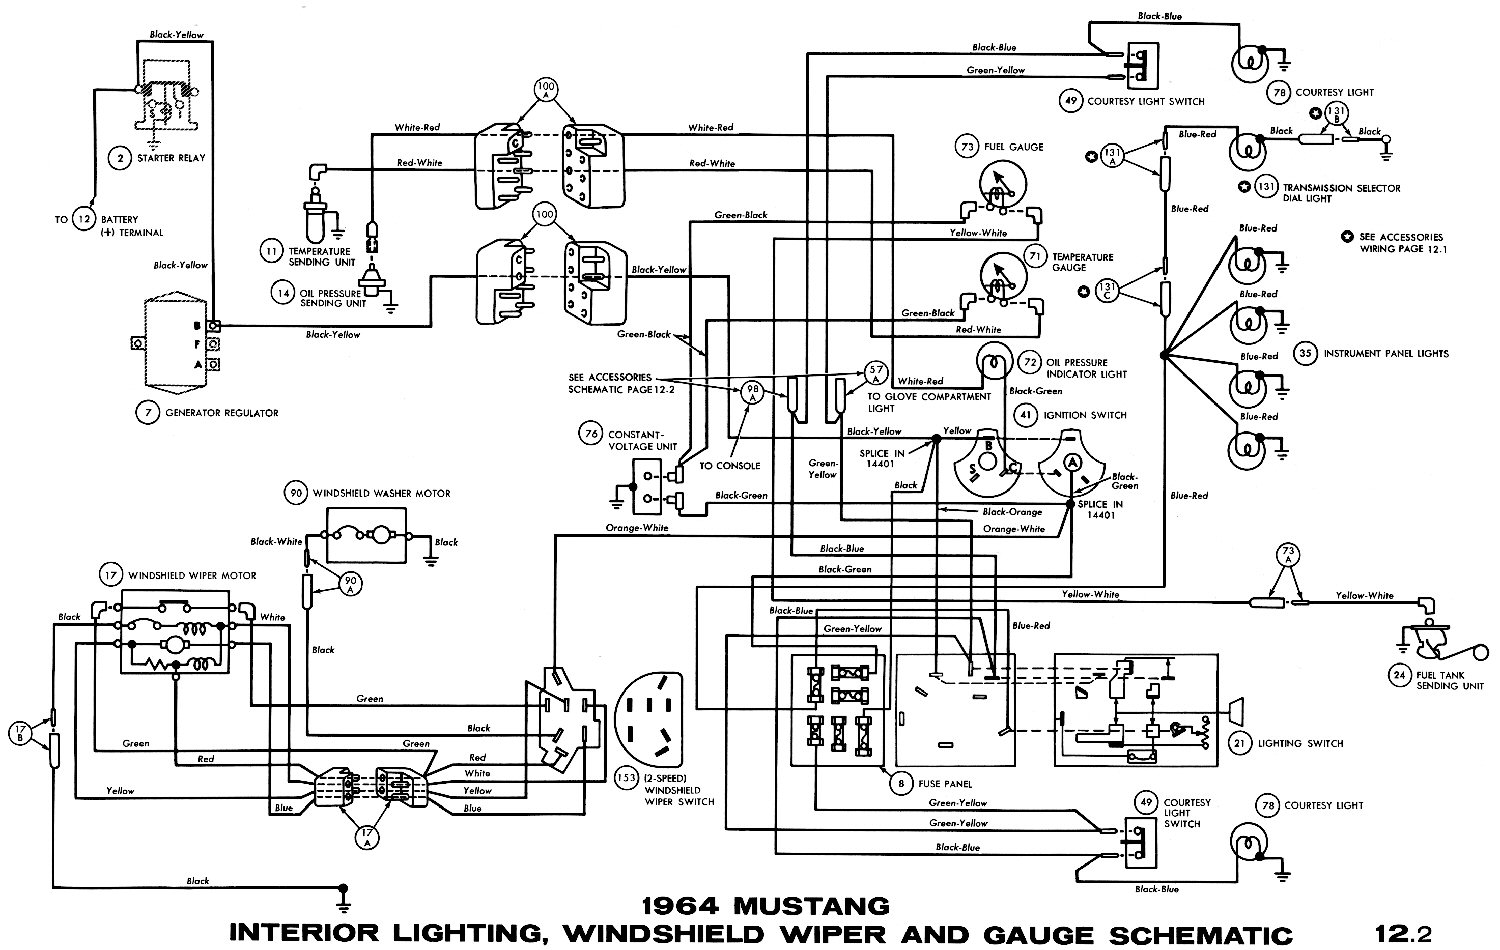 1964k 1964 mustang wiring diagrams average joe restoration 1965 mustang instrument cluster wiring diagram at n-0.co